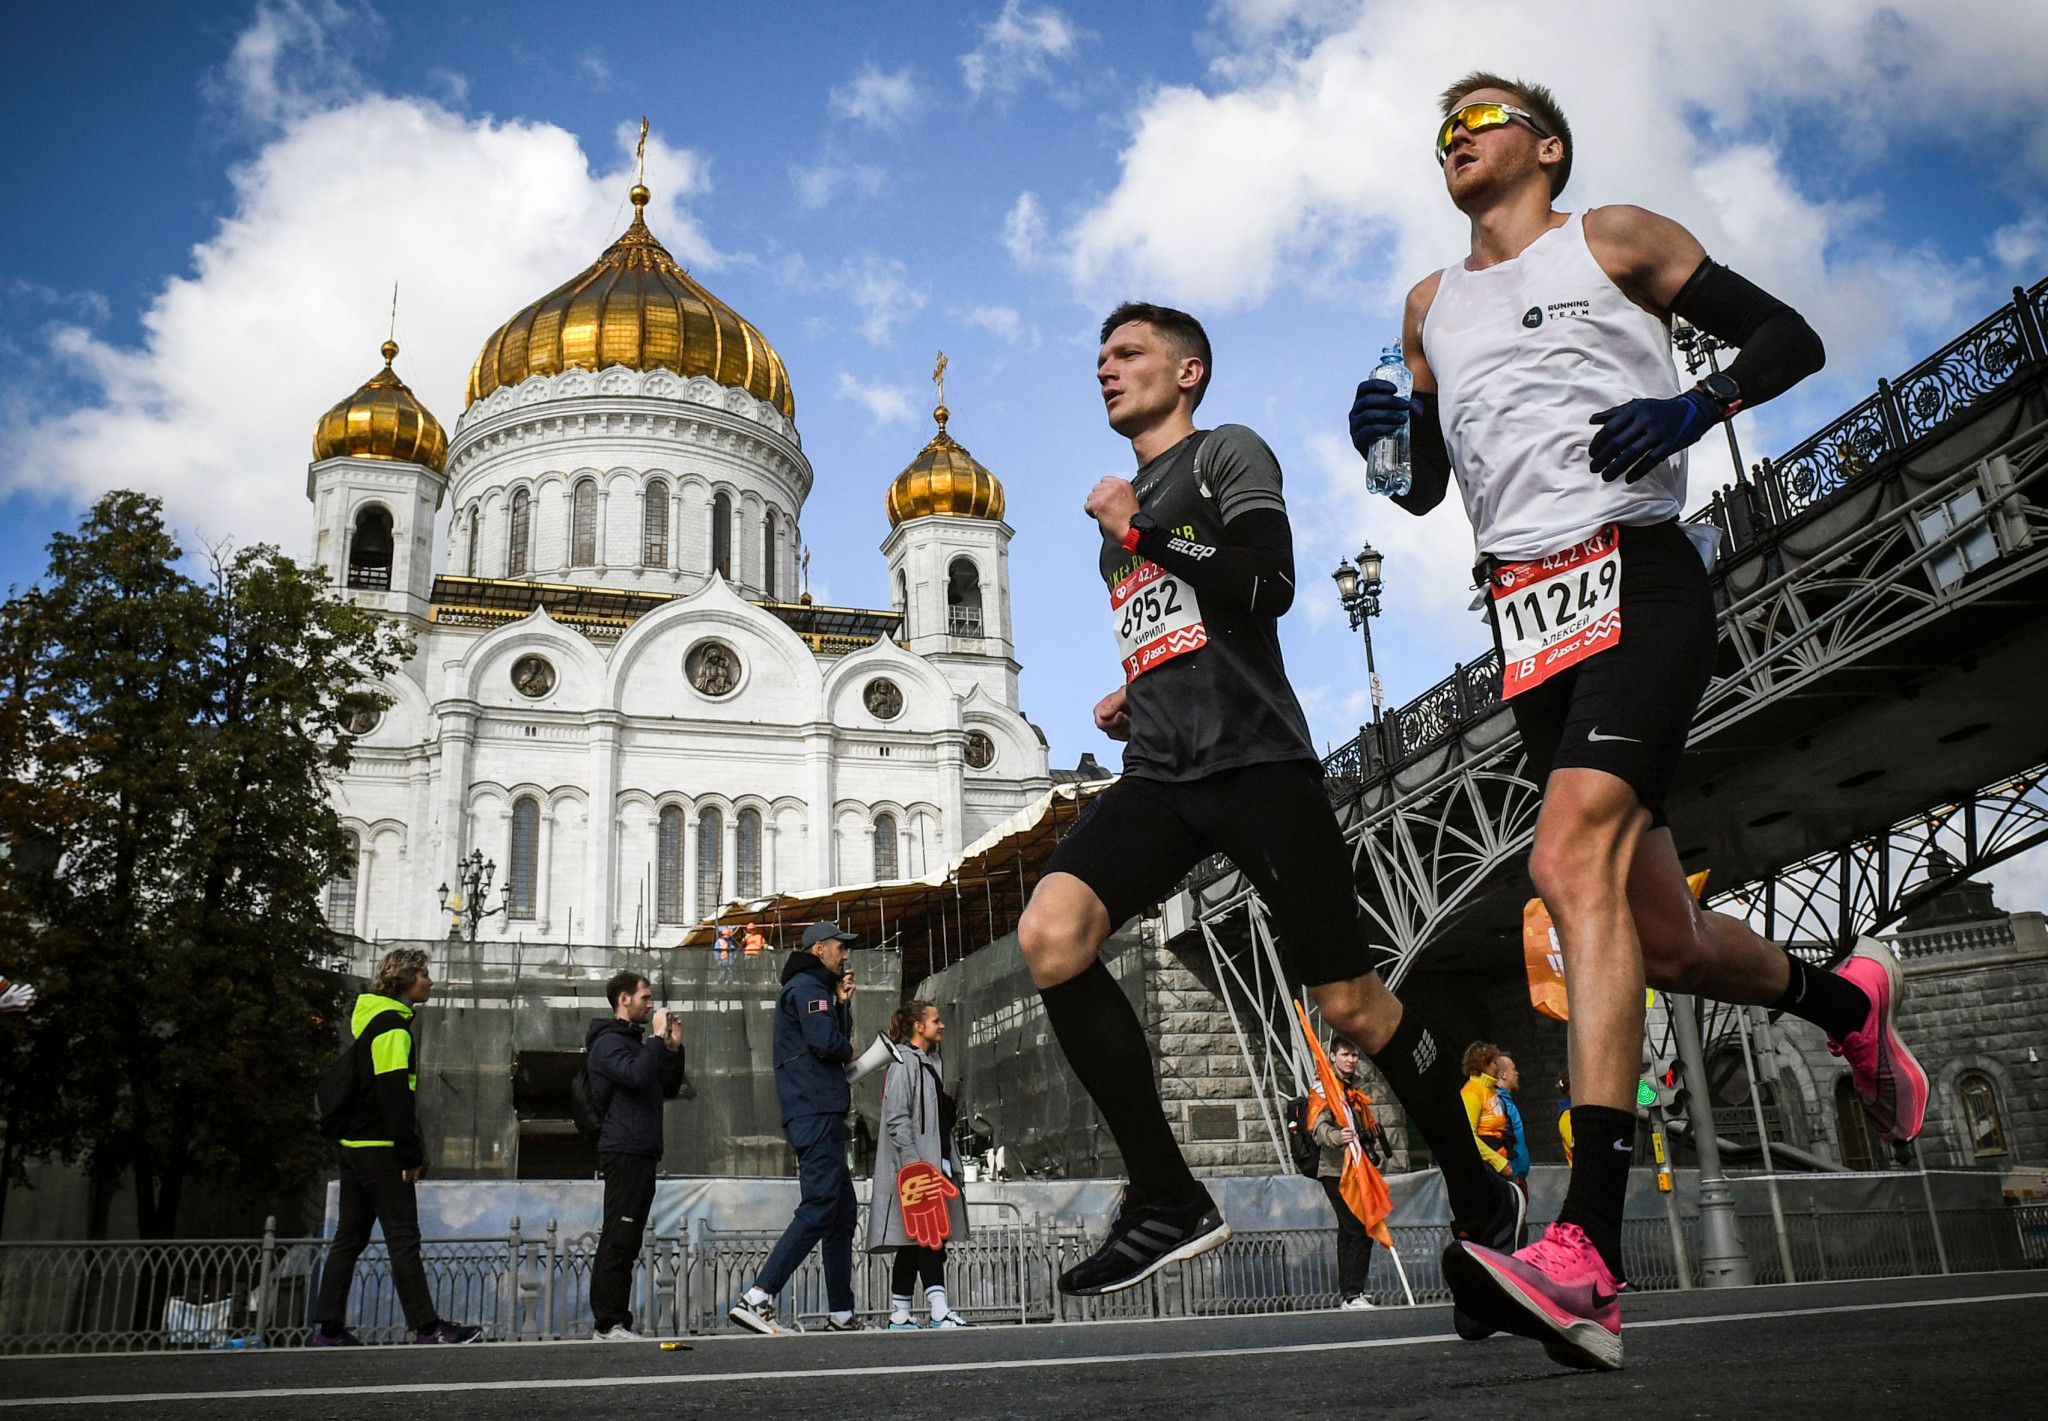 The Moscow Marathon was successfully held in 2020 despite the pandemic ©Getty Images